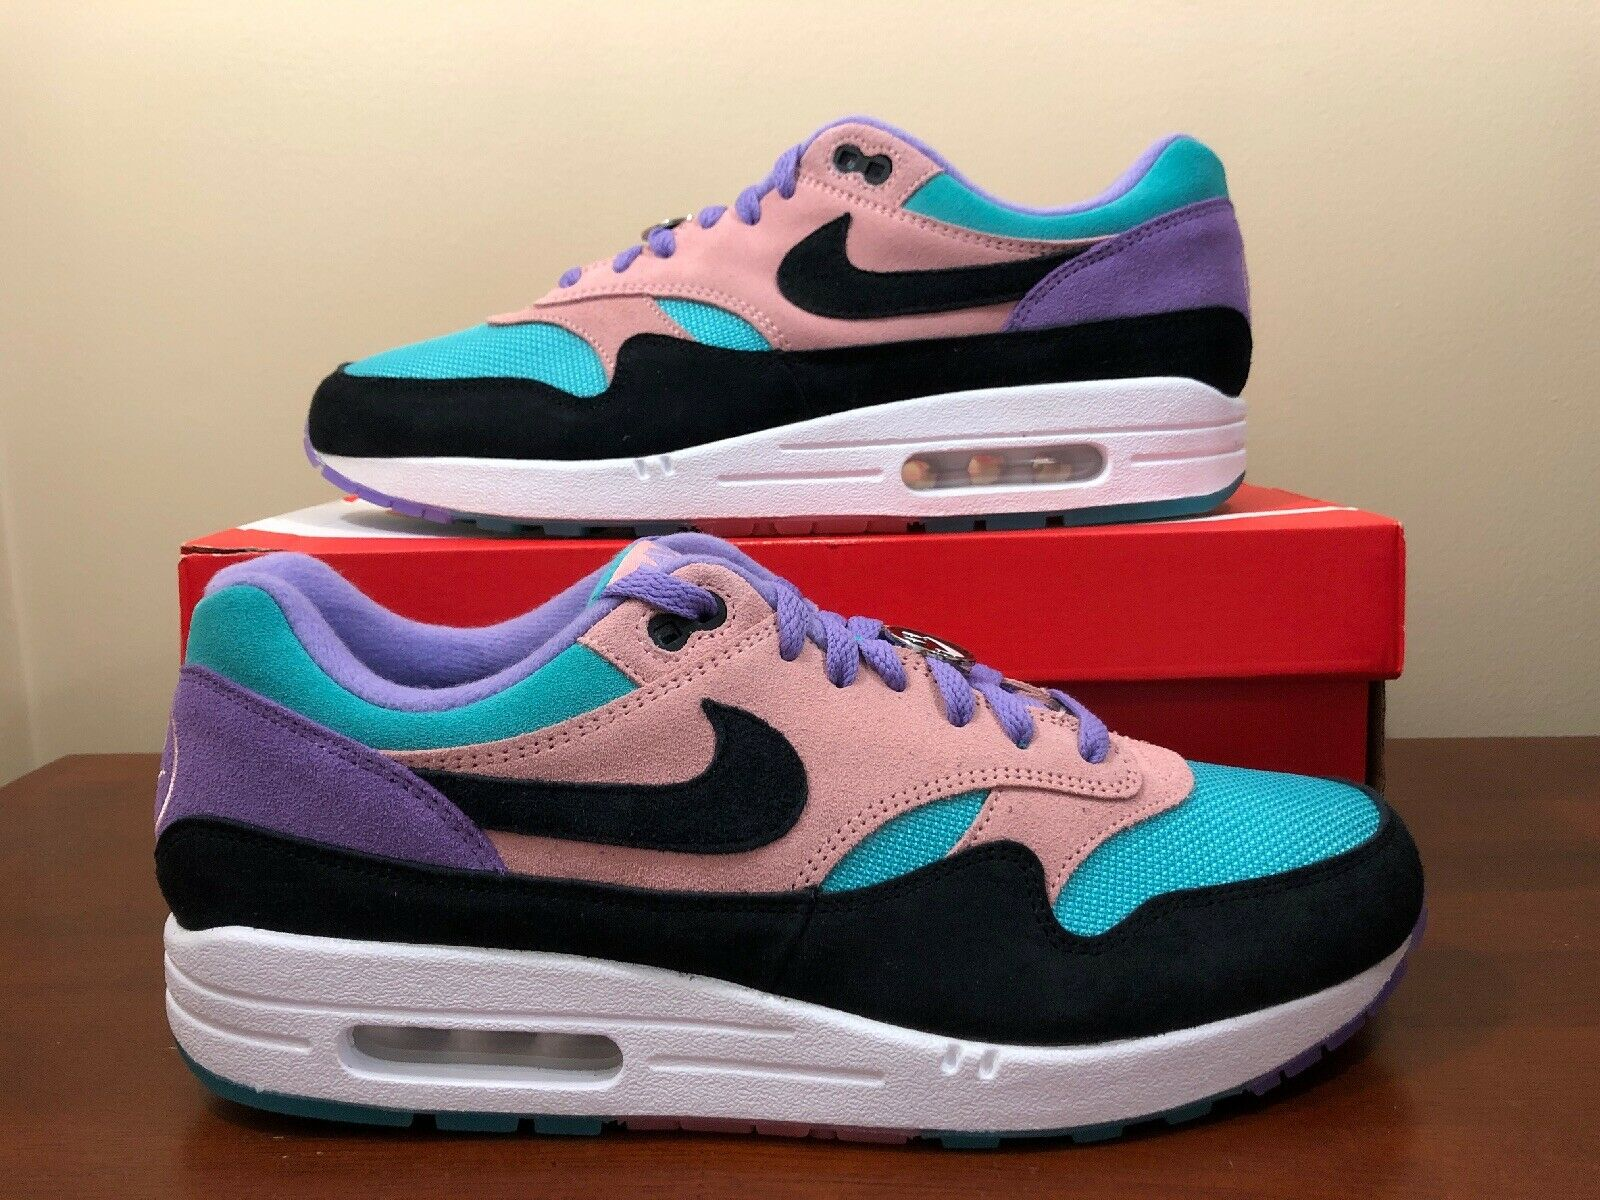 Nike Air Max 1 Have a Nike Day Space Purple Black BQ8929-500 Size 11.5